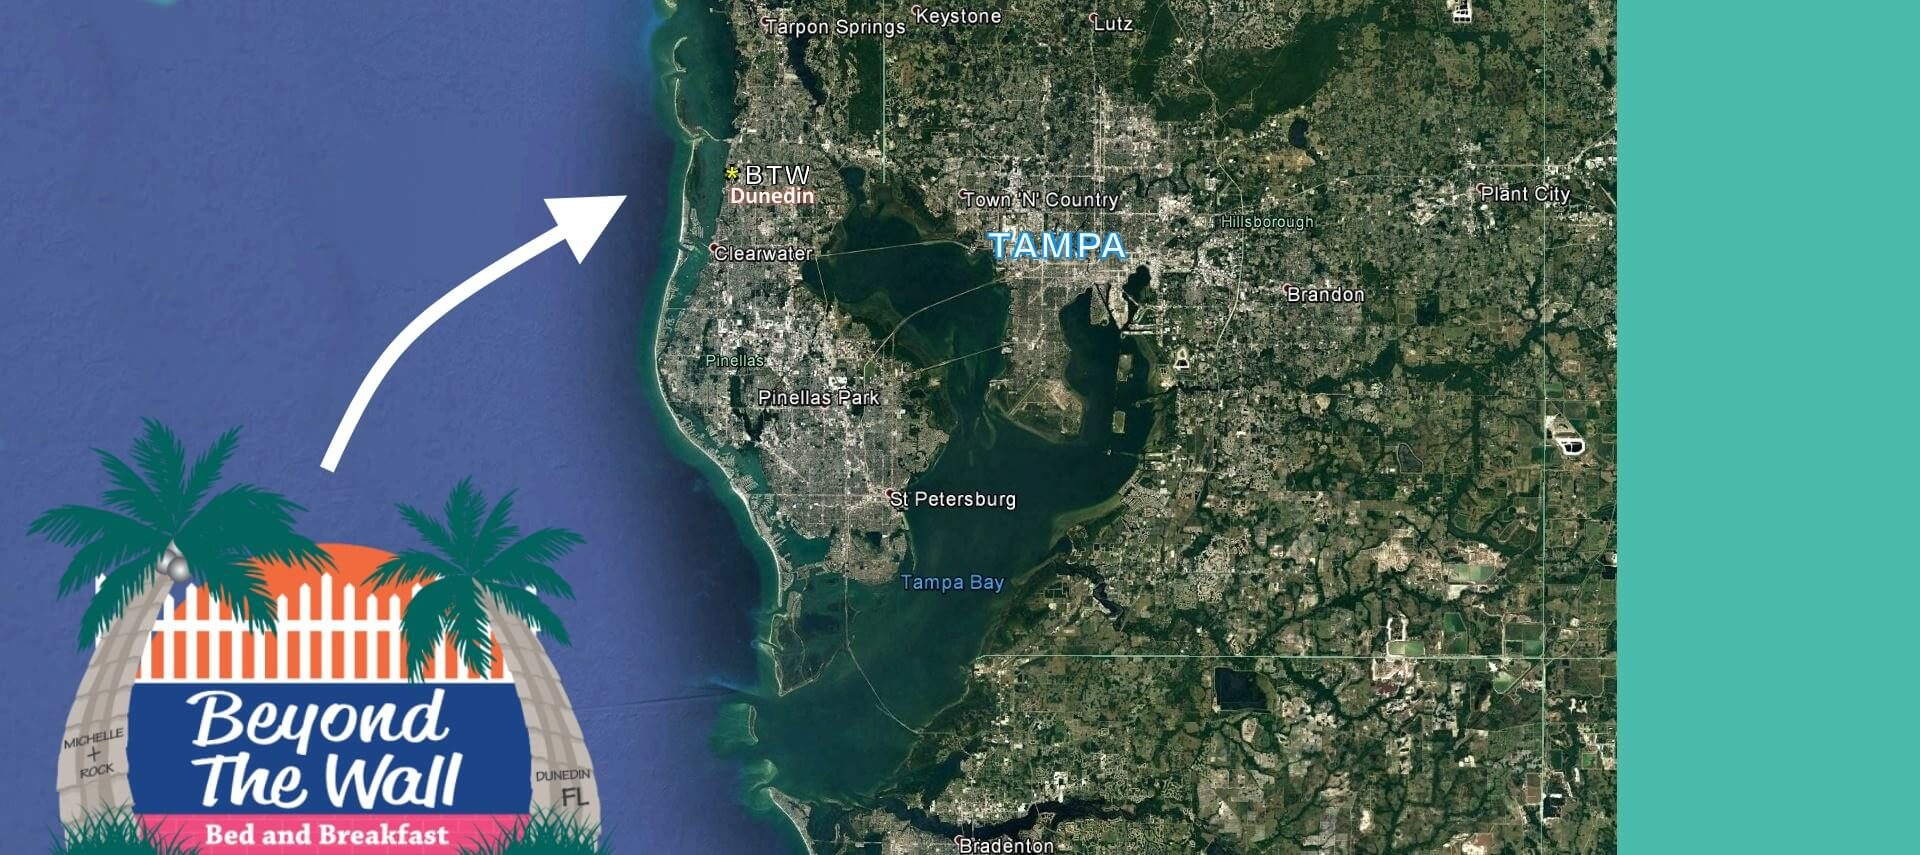 Landscape view of DunedIn, FL, with a logo pointing to location of Beyond the Wall Bed & Breakfast